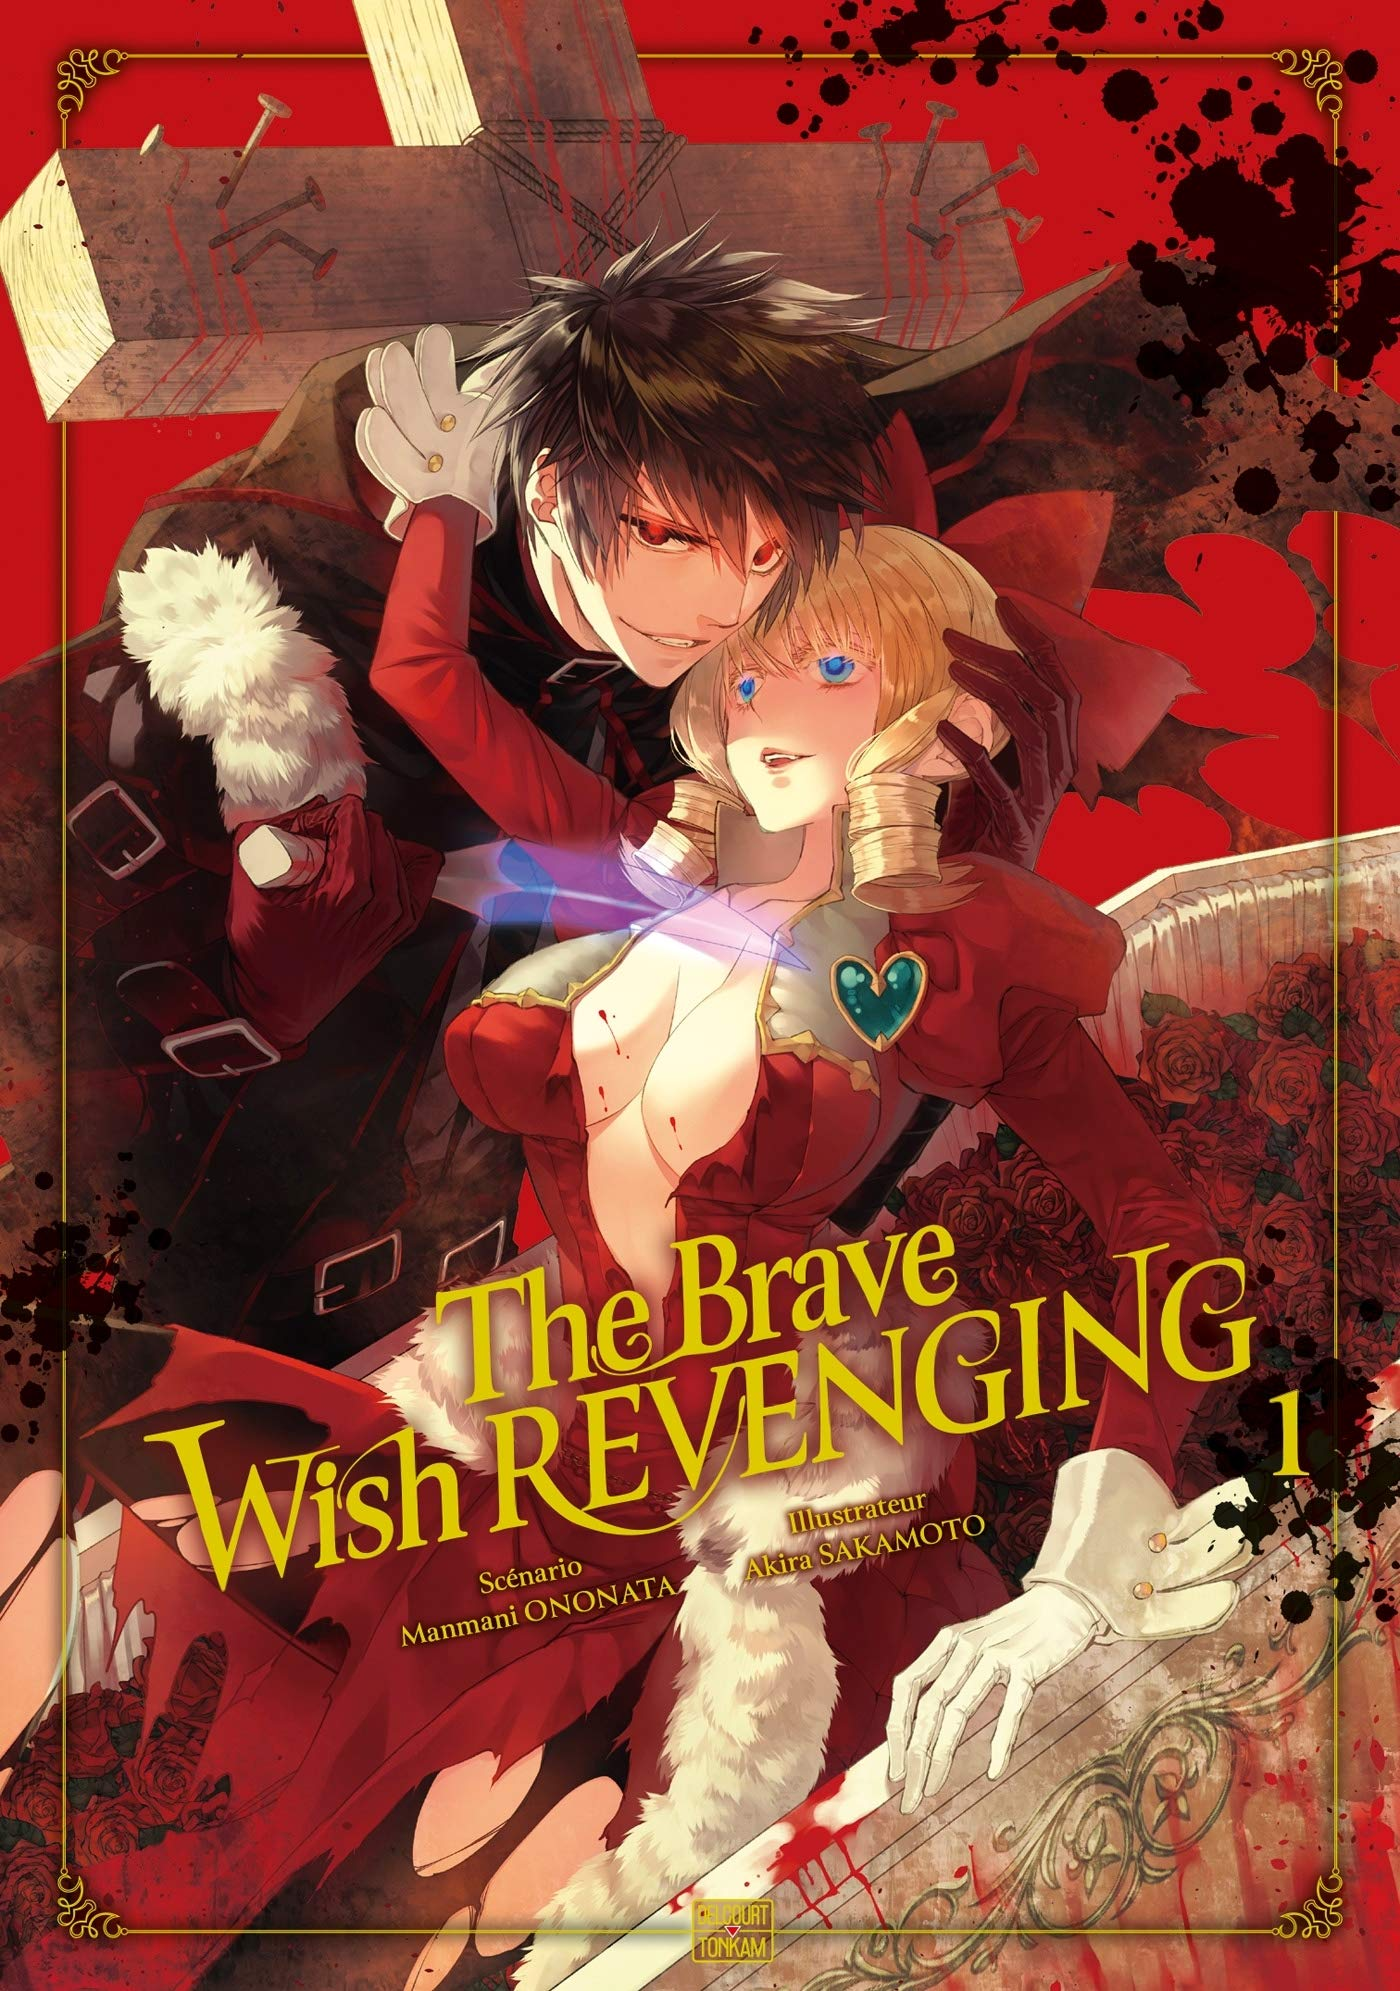 The Brave wish revenging 1